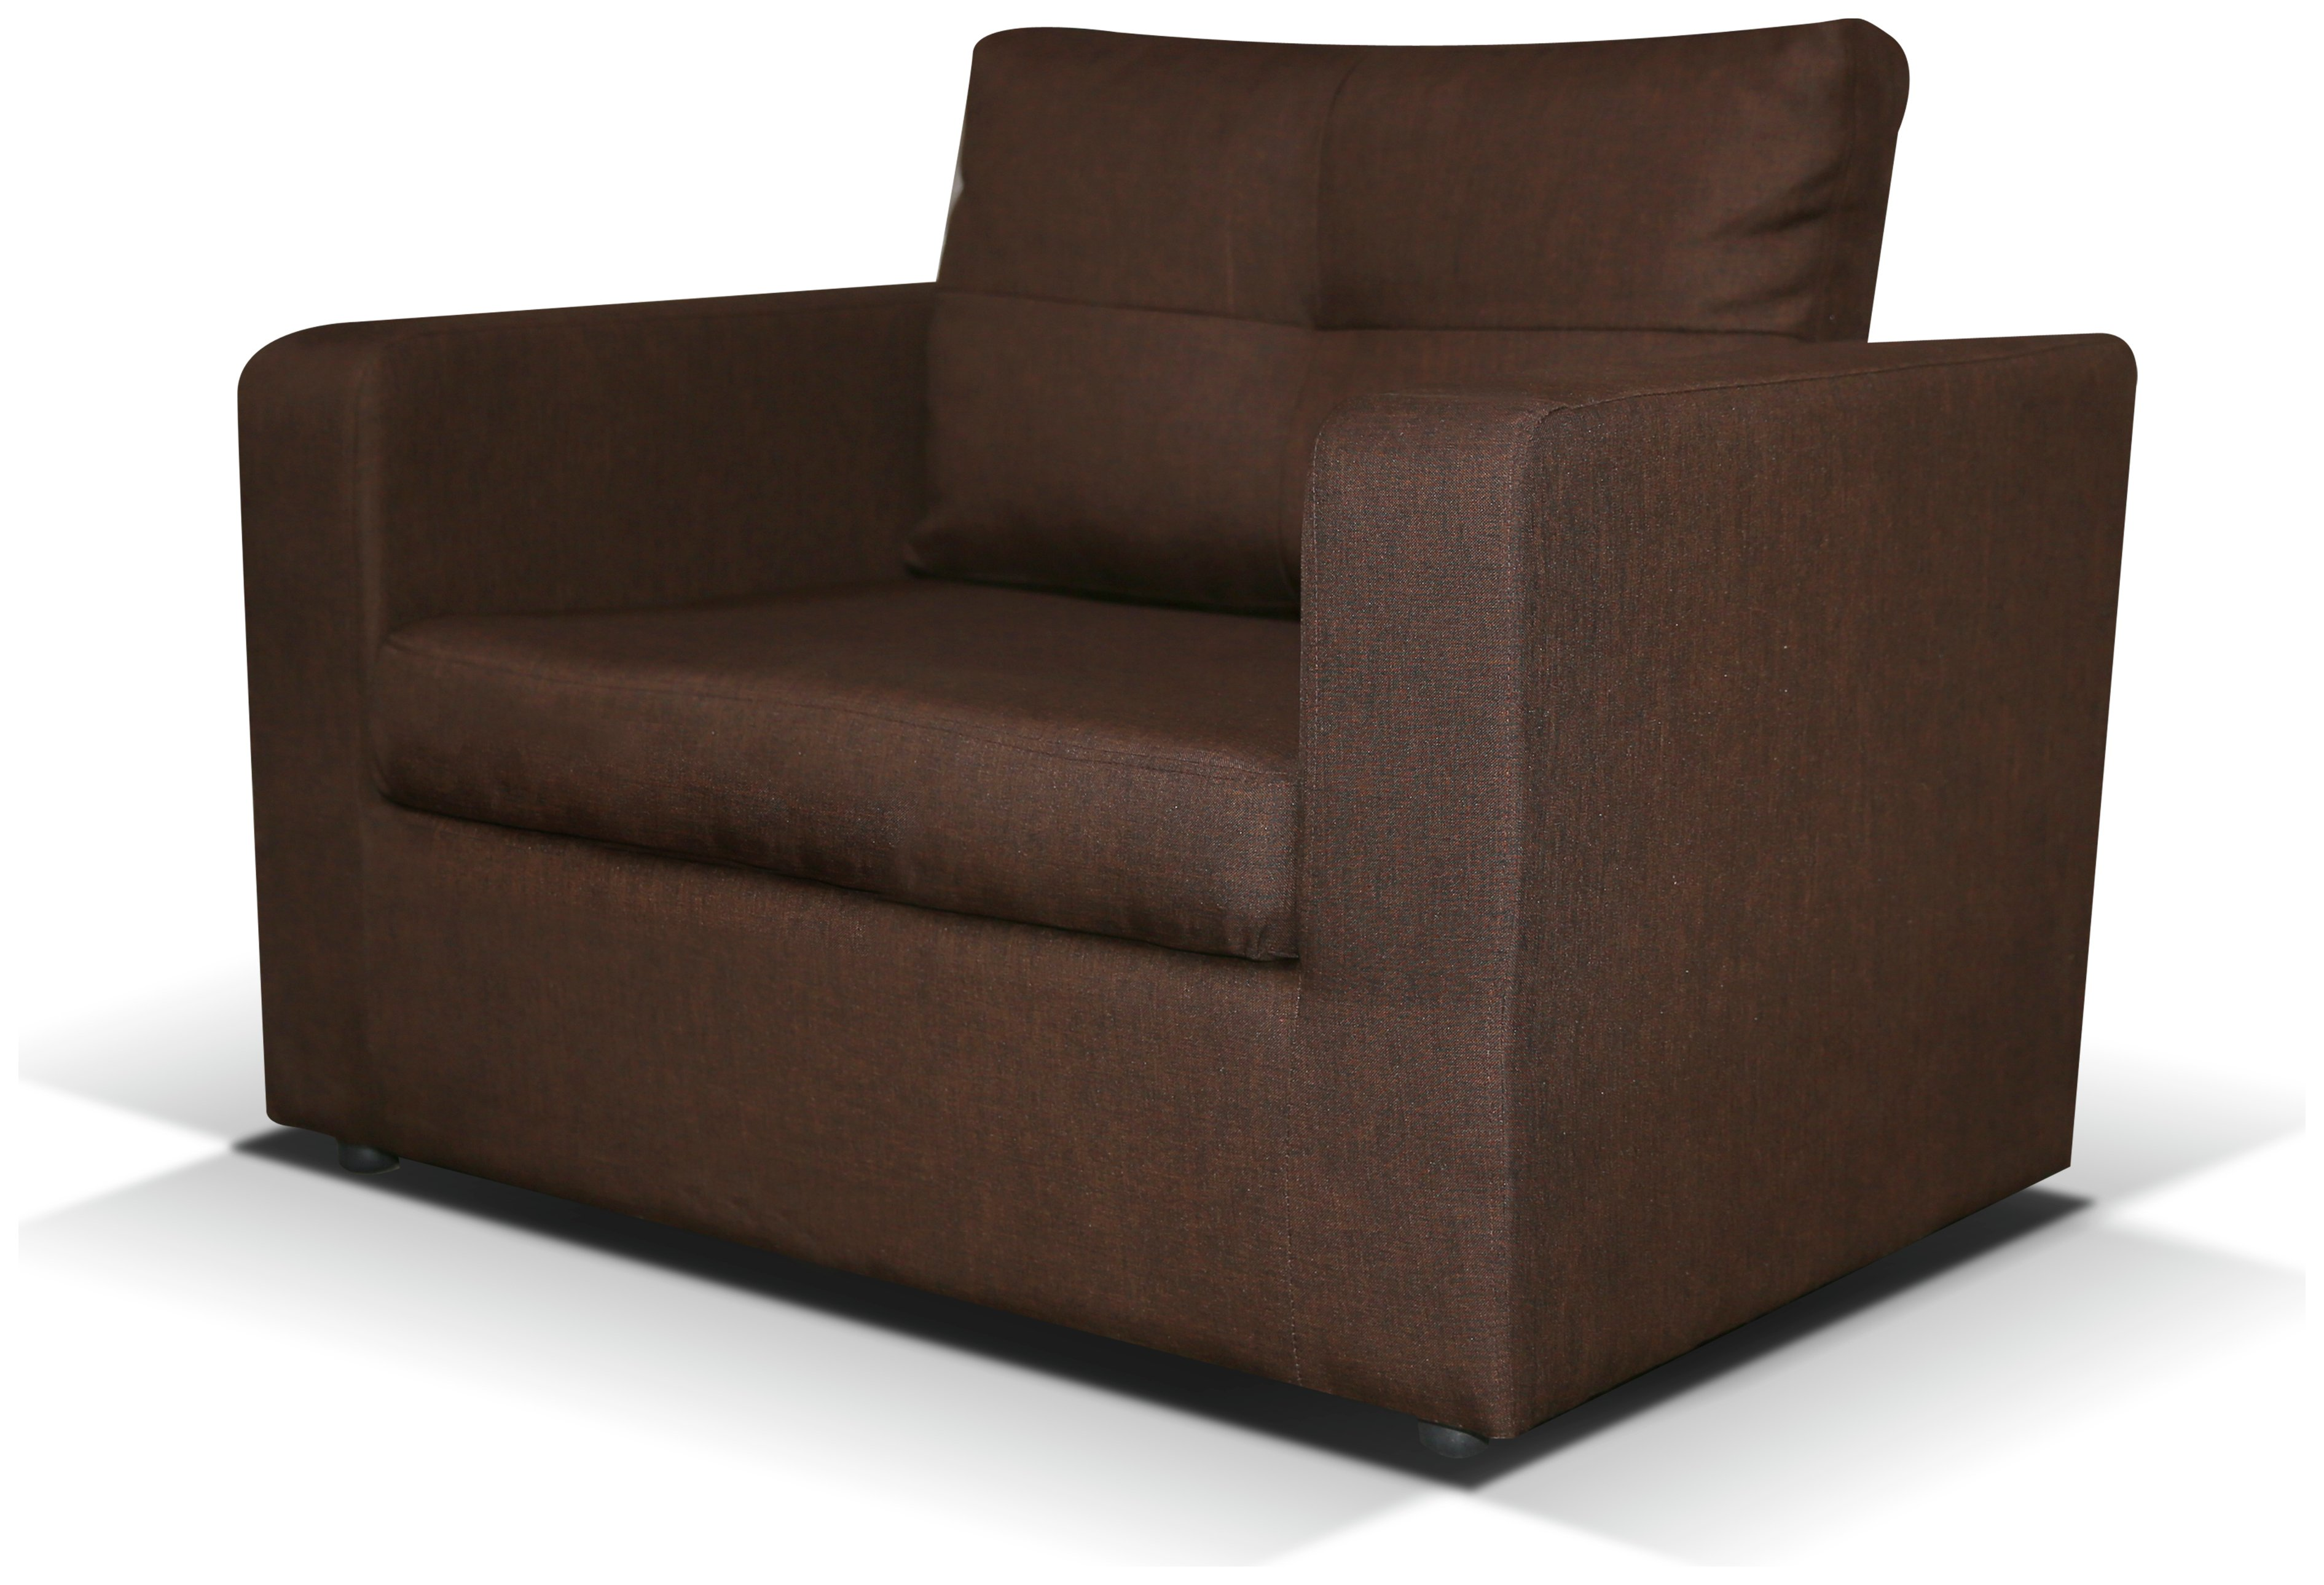 Image of Max - Fabric Chair Bed - Chocolate